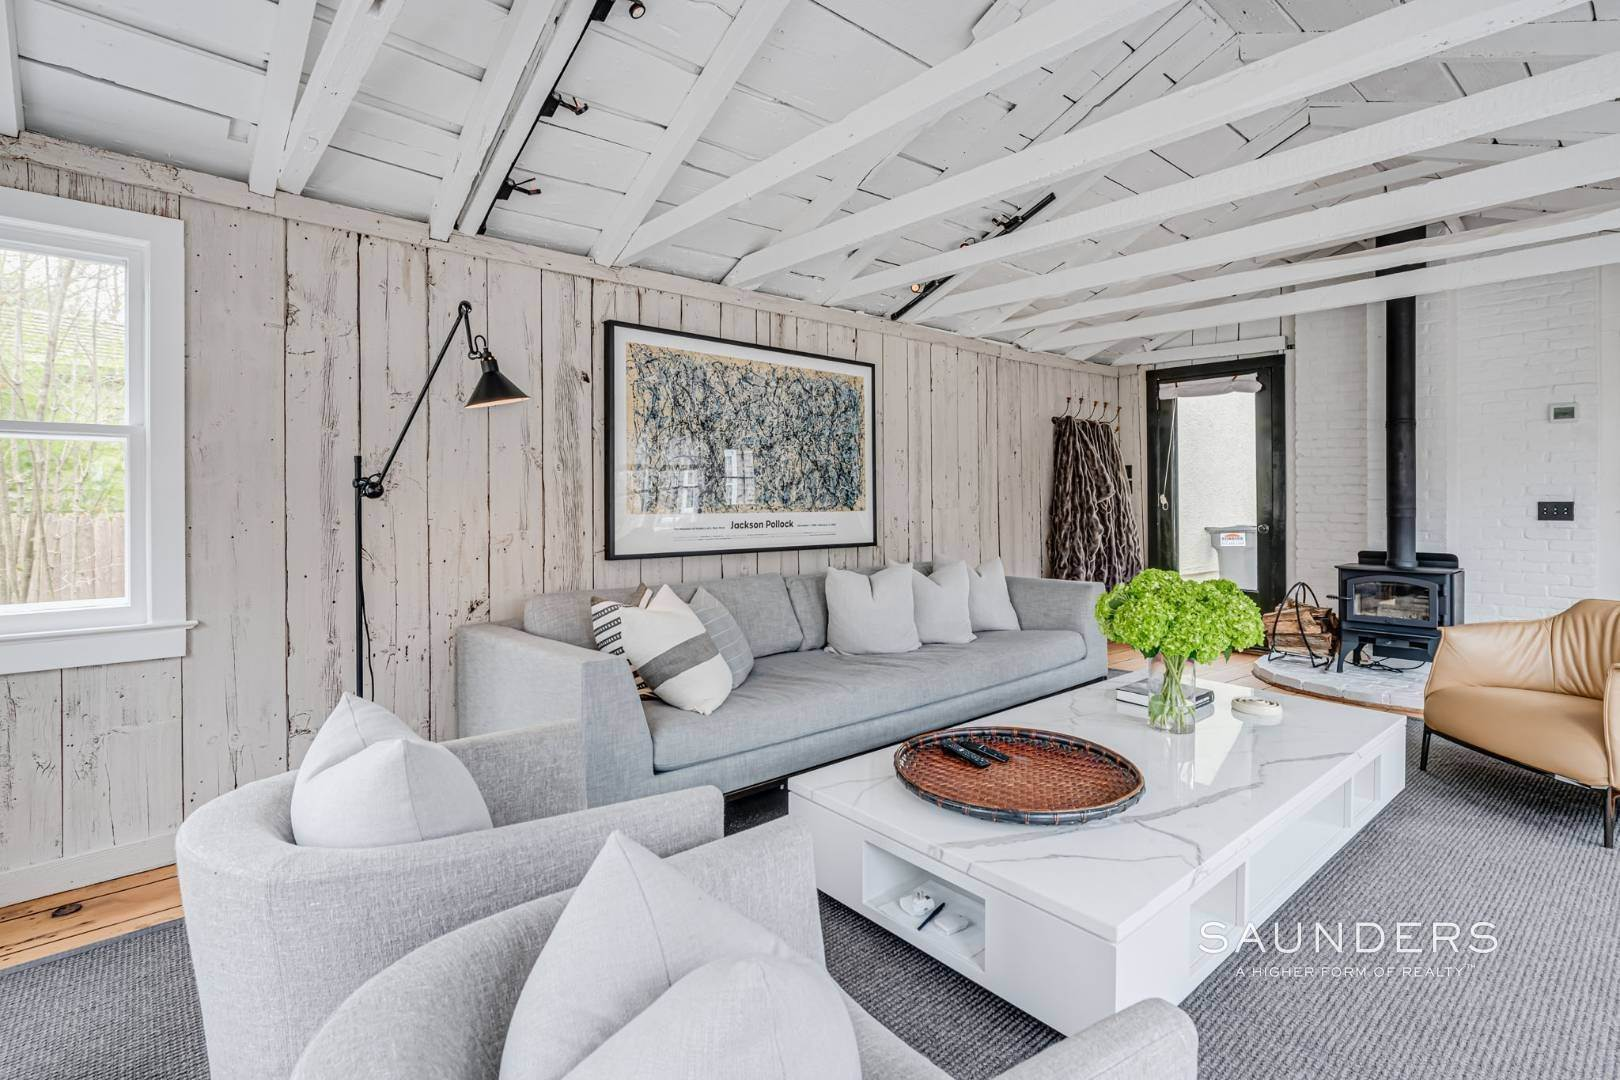 12. Single Family Homes for Sale at Sag Harbor Village Historic Renovation With Pool And Cottage 49 Rysam Street, Sag Harbor, Southampton Town, NY 11963